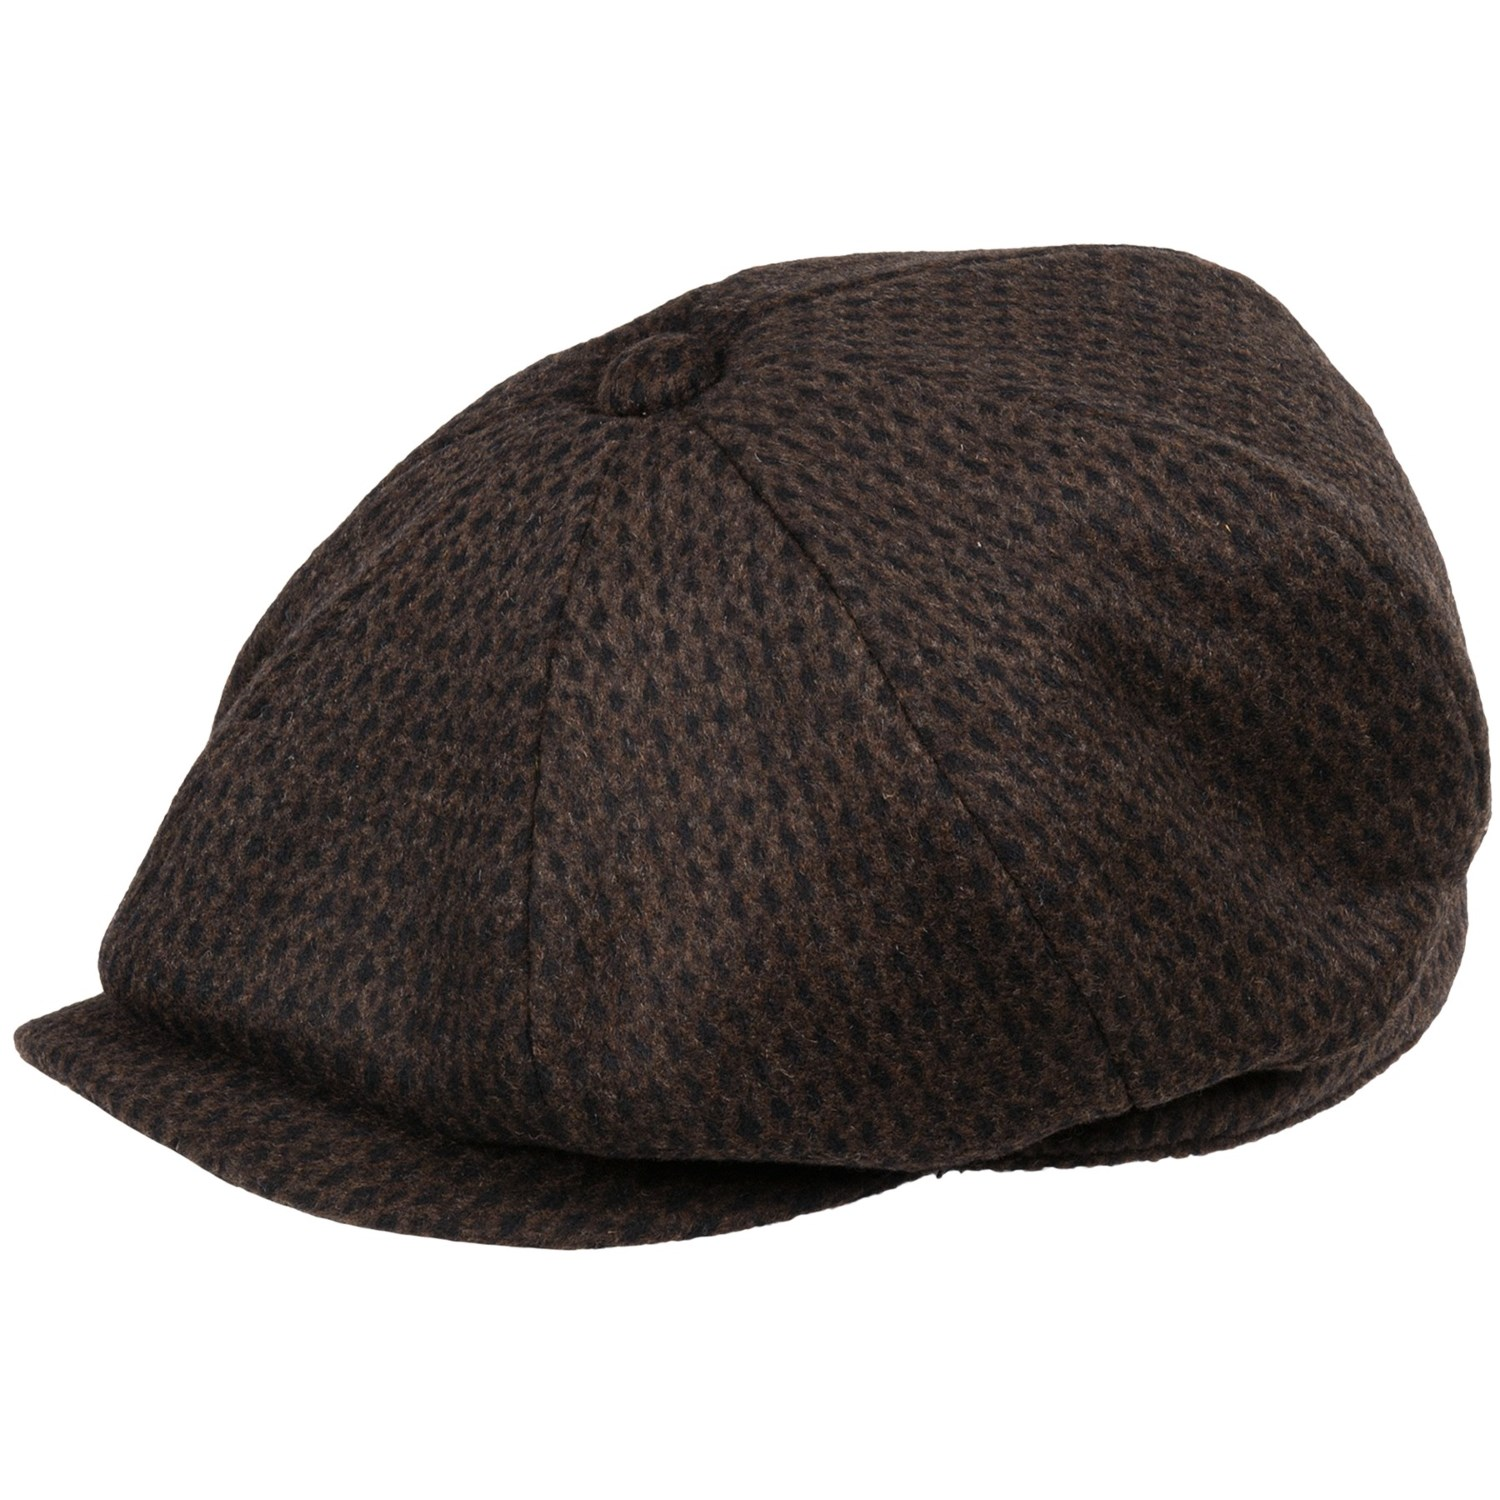 With the best selection of high-end mens and womens headwear, wilmergolding6jn1.gq is the online hat destination of choice. Shop all the latest styles and trends. Newsboy Caps - Shop by Style - Men's Hats.